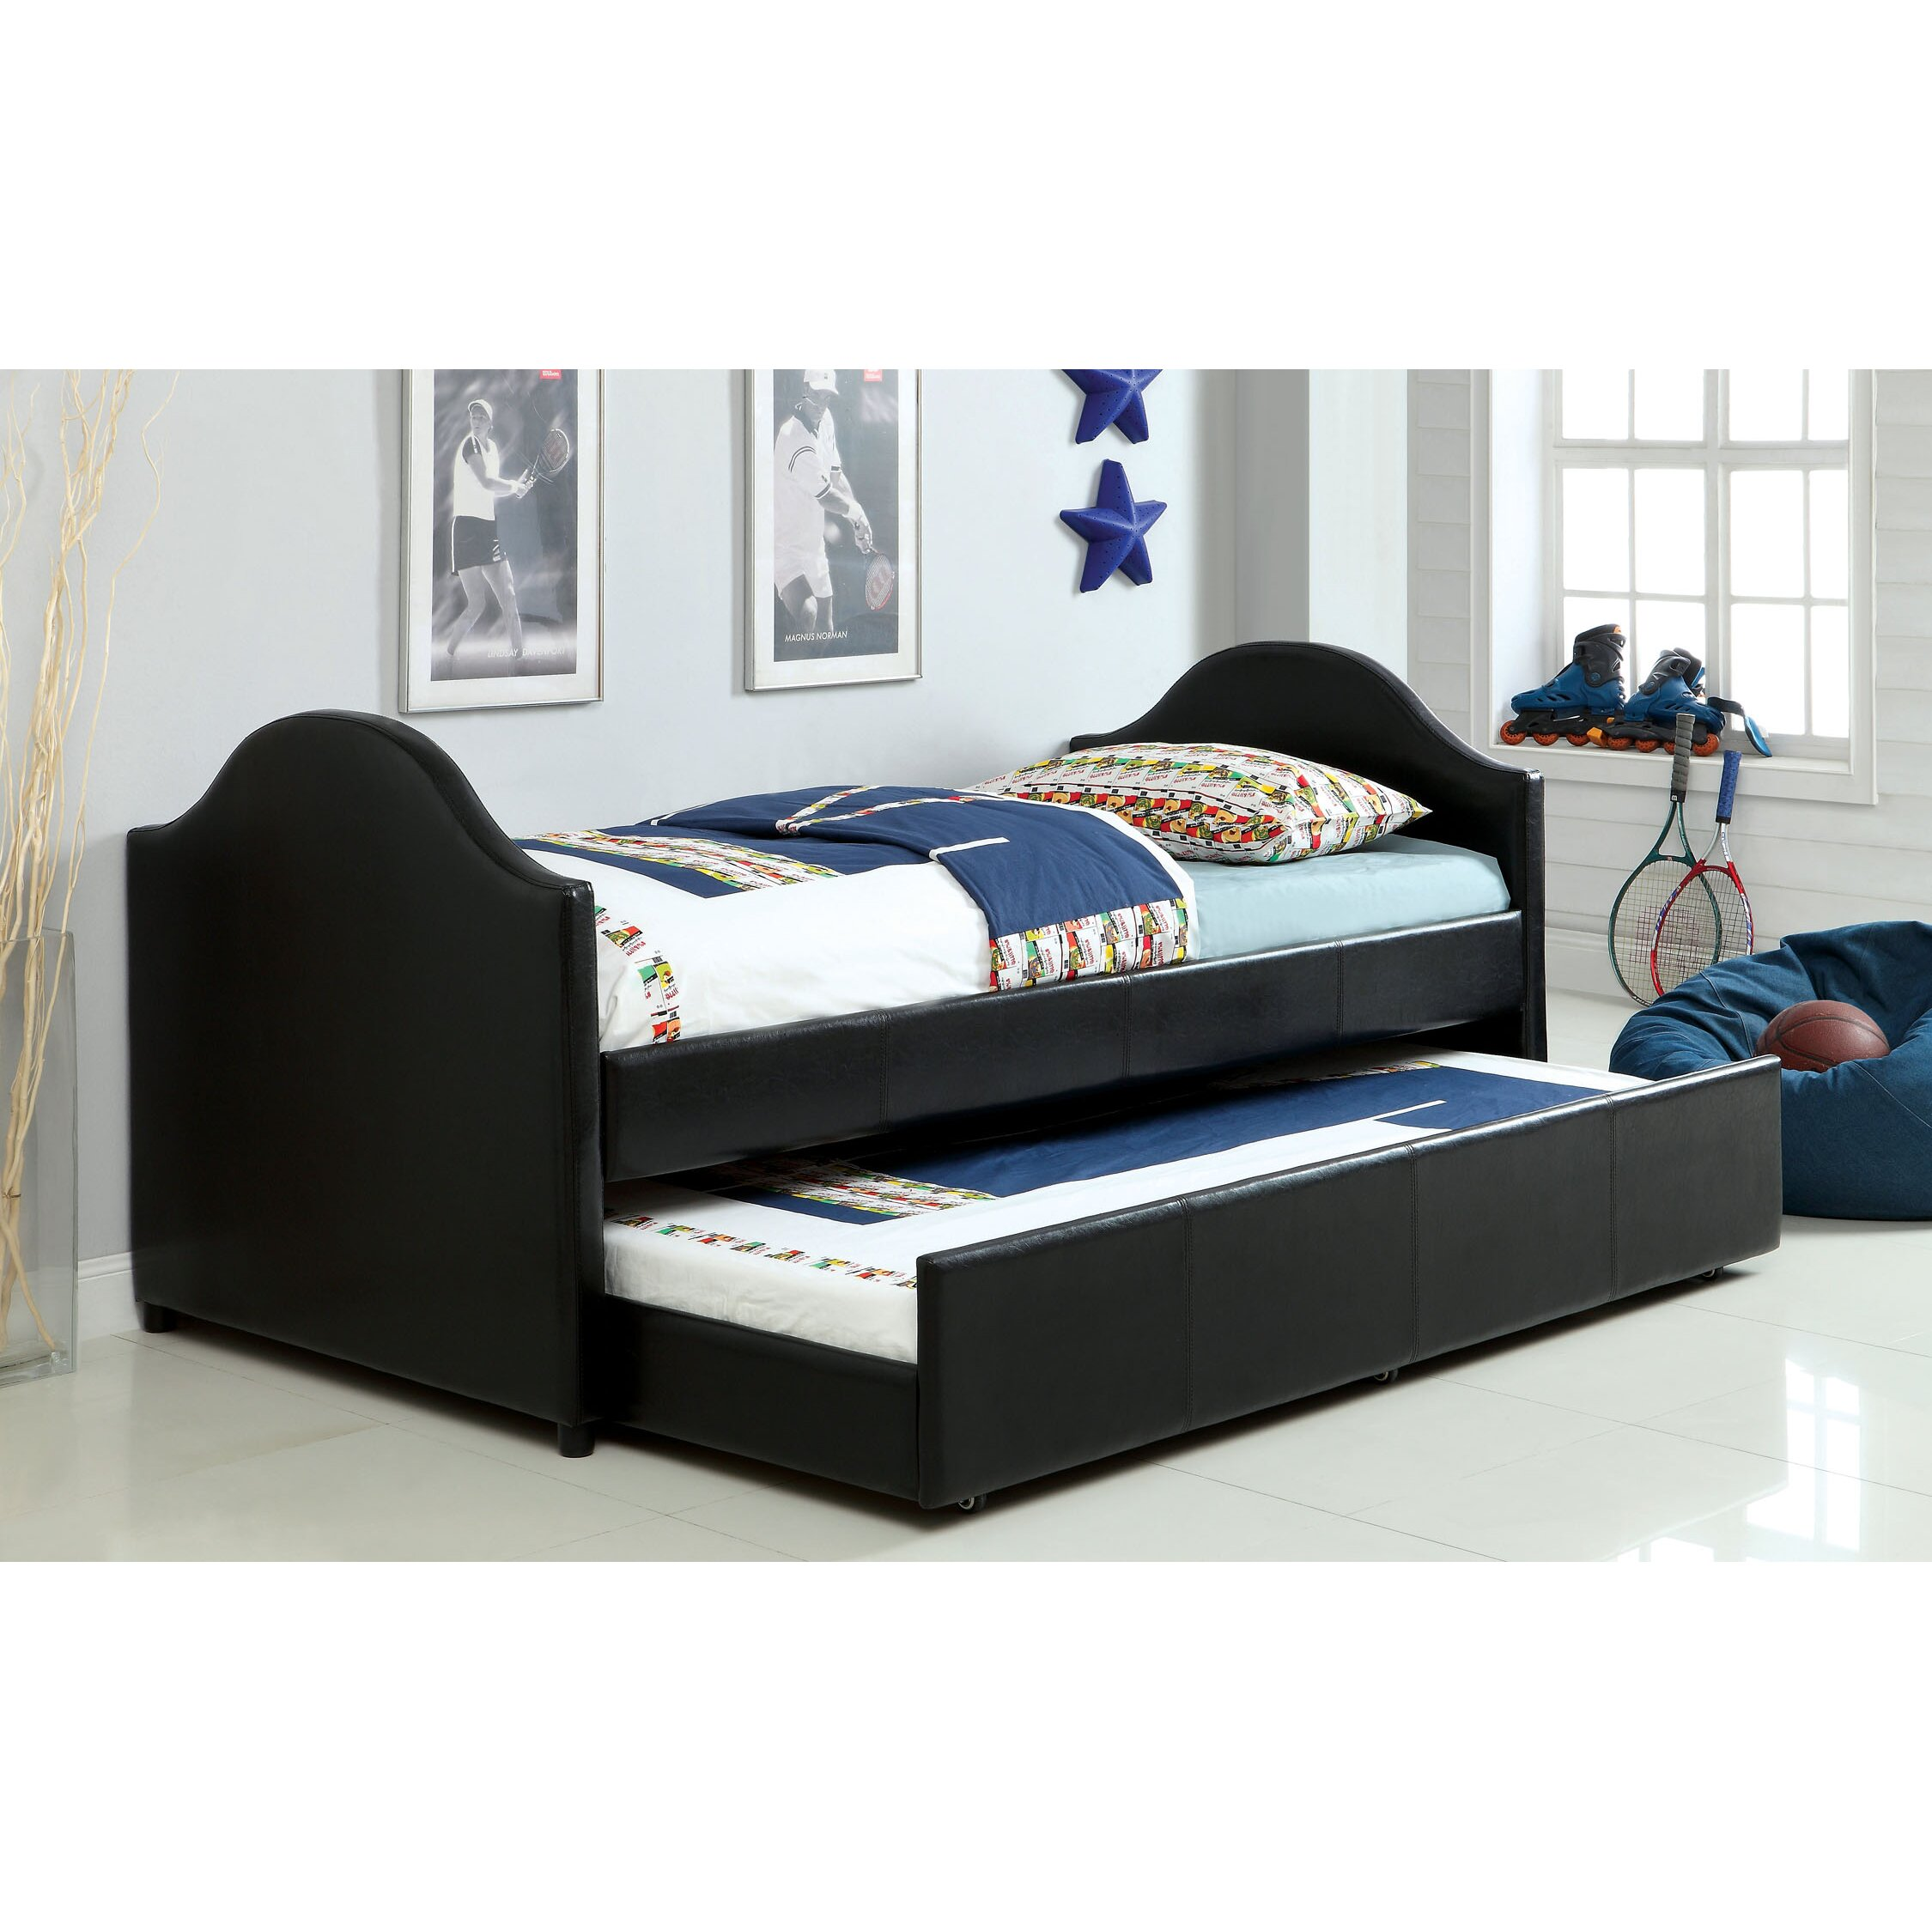 Hokku designs rhine twin bed with trundle reviews wayfair for Beds with trundle